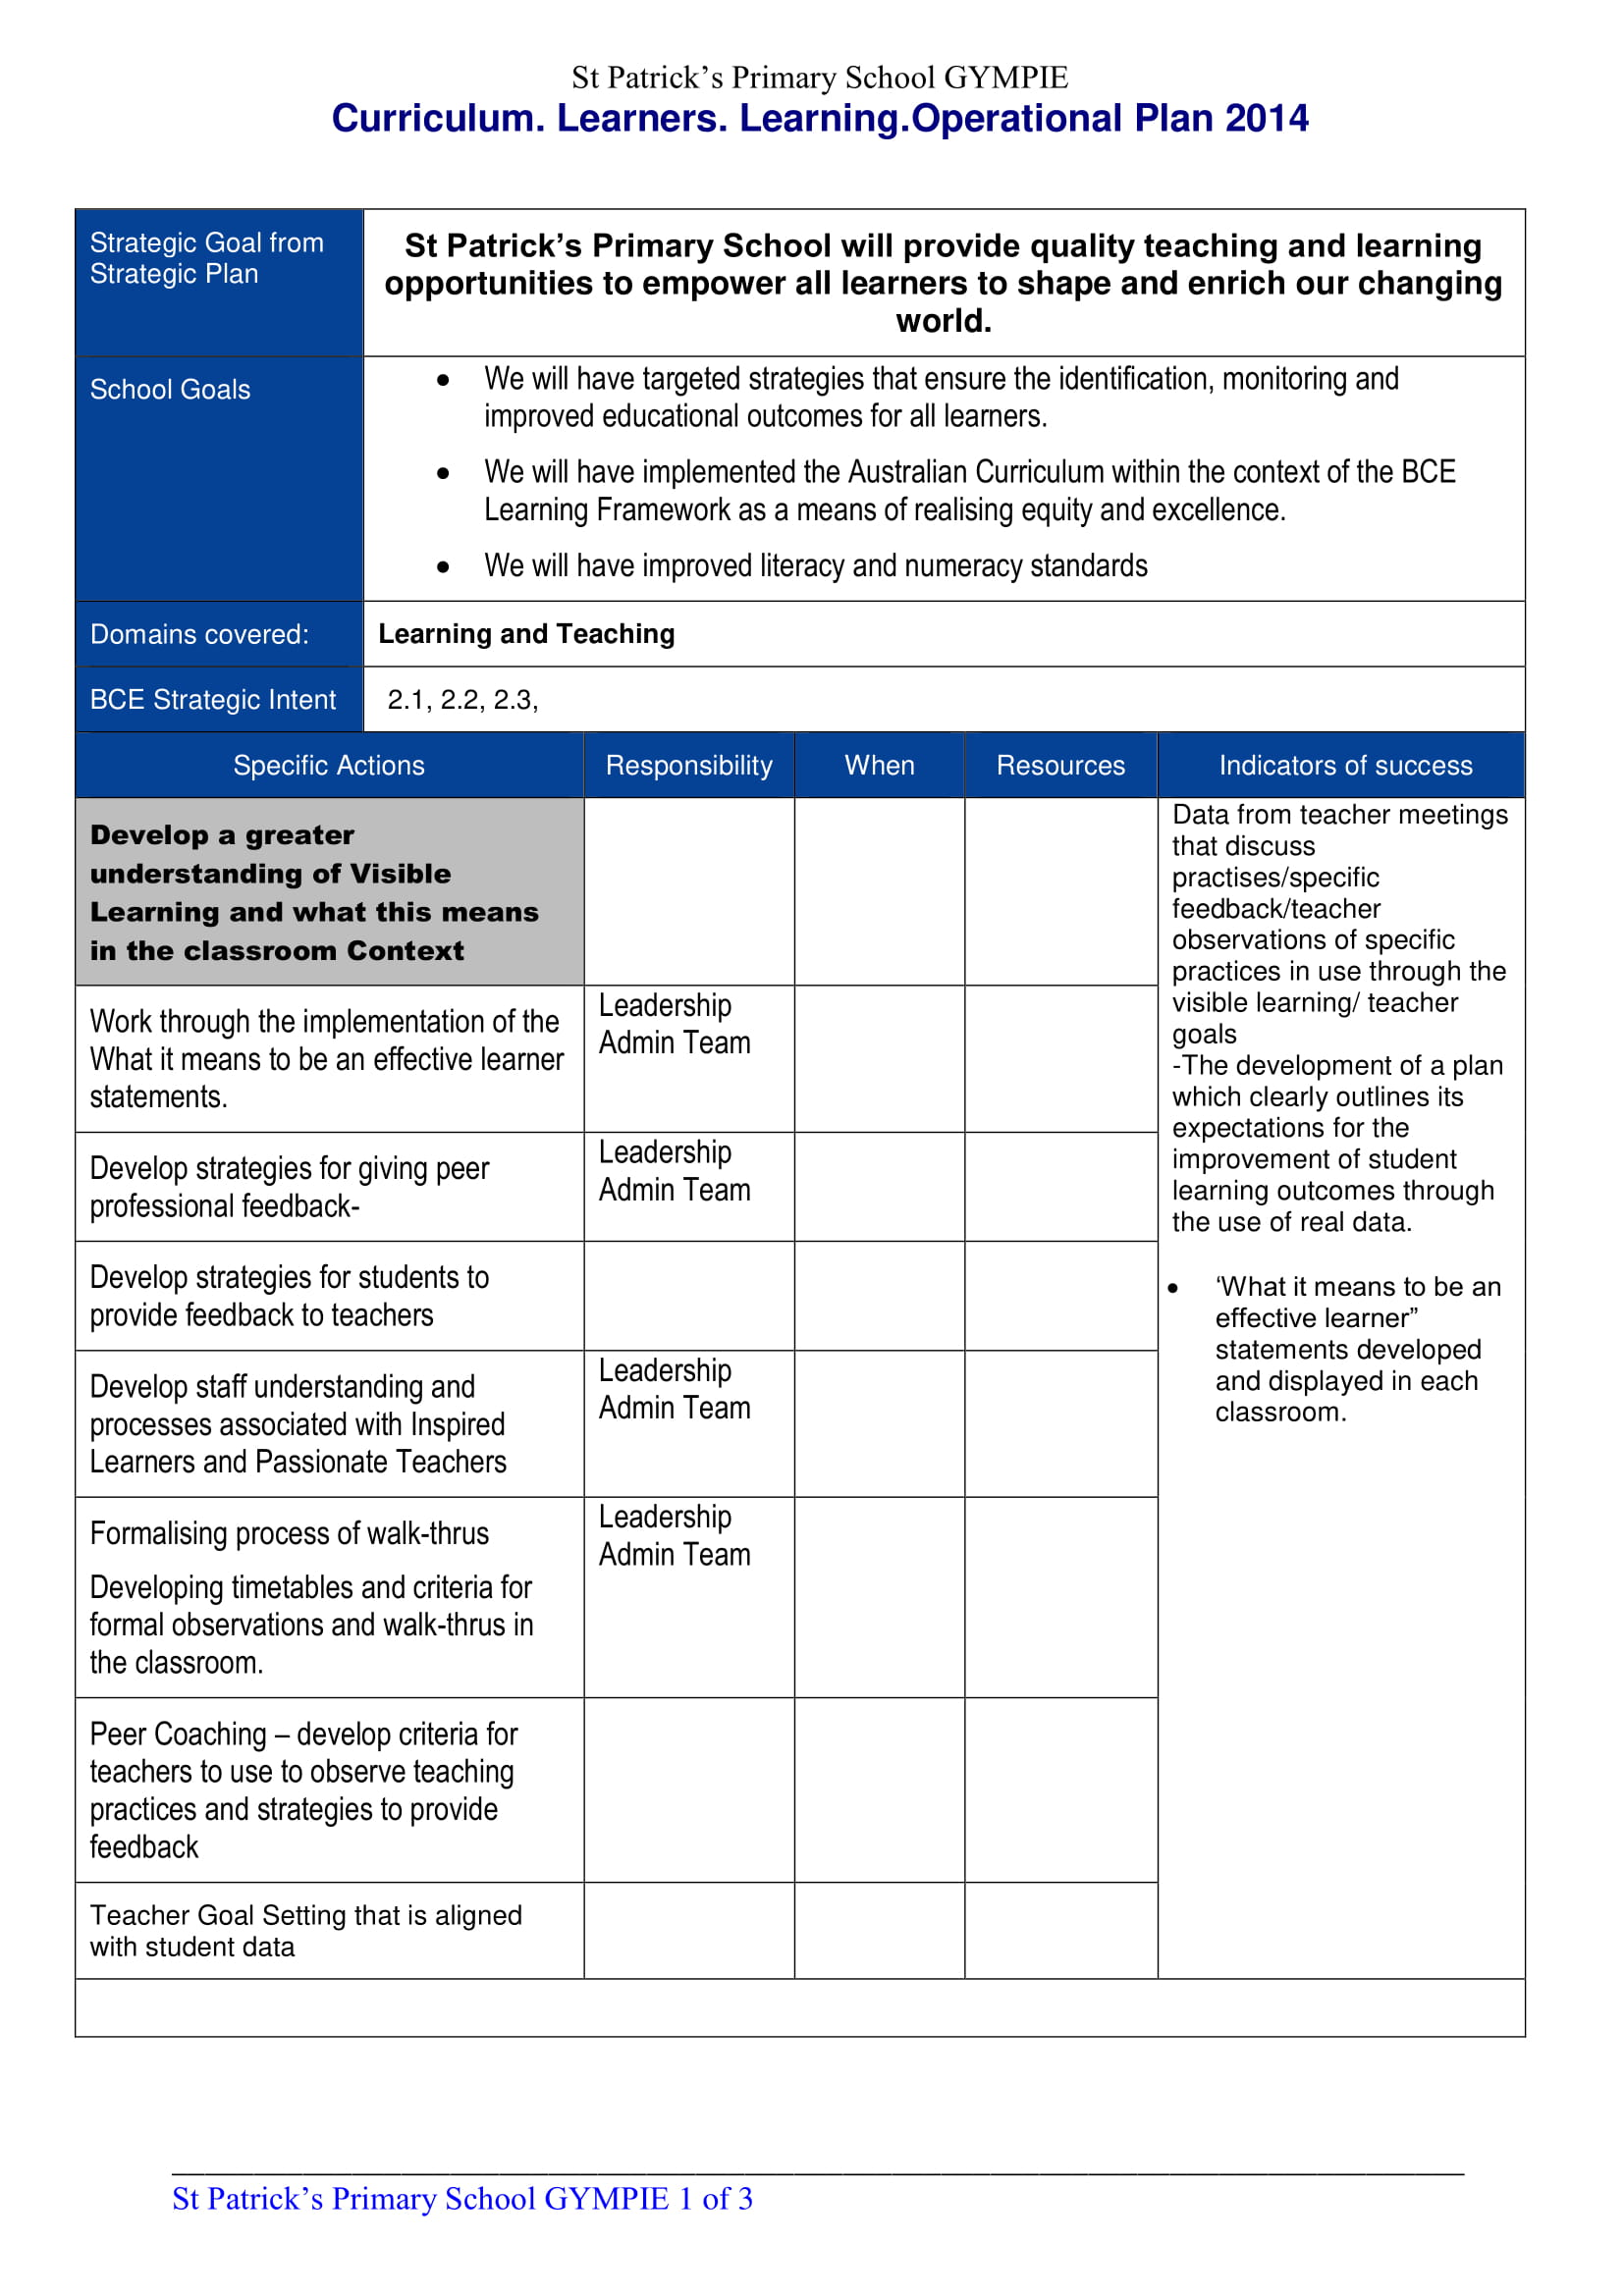 primary school cirriculum learning and operational plan example 1